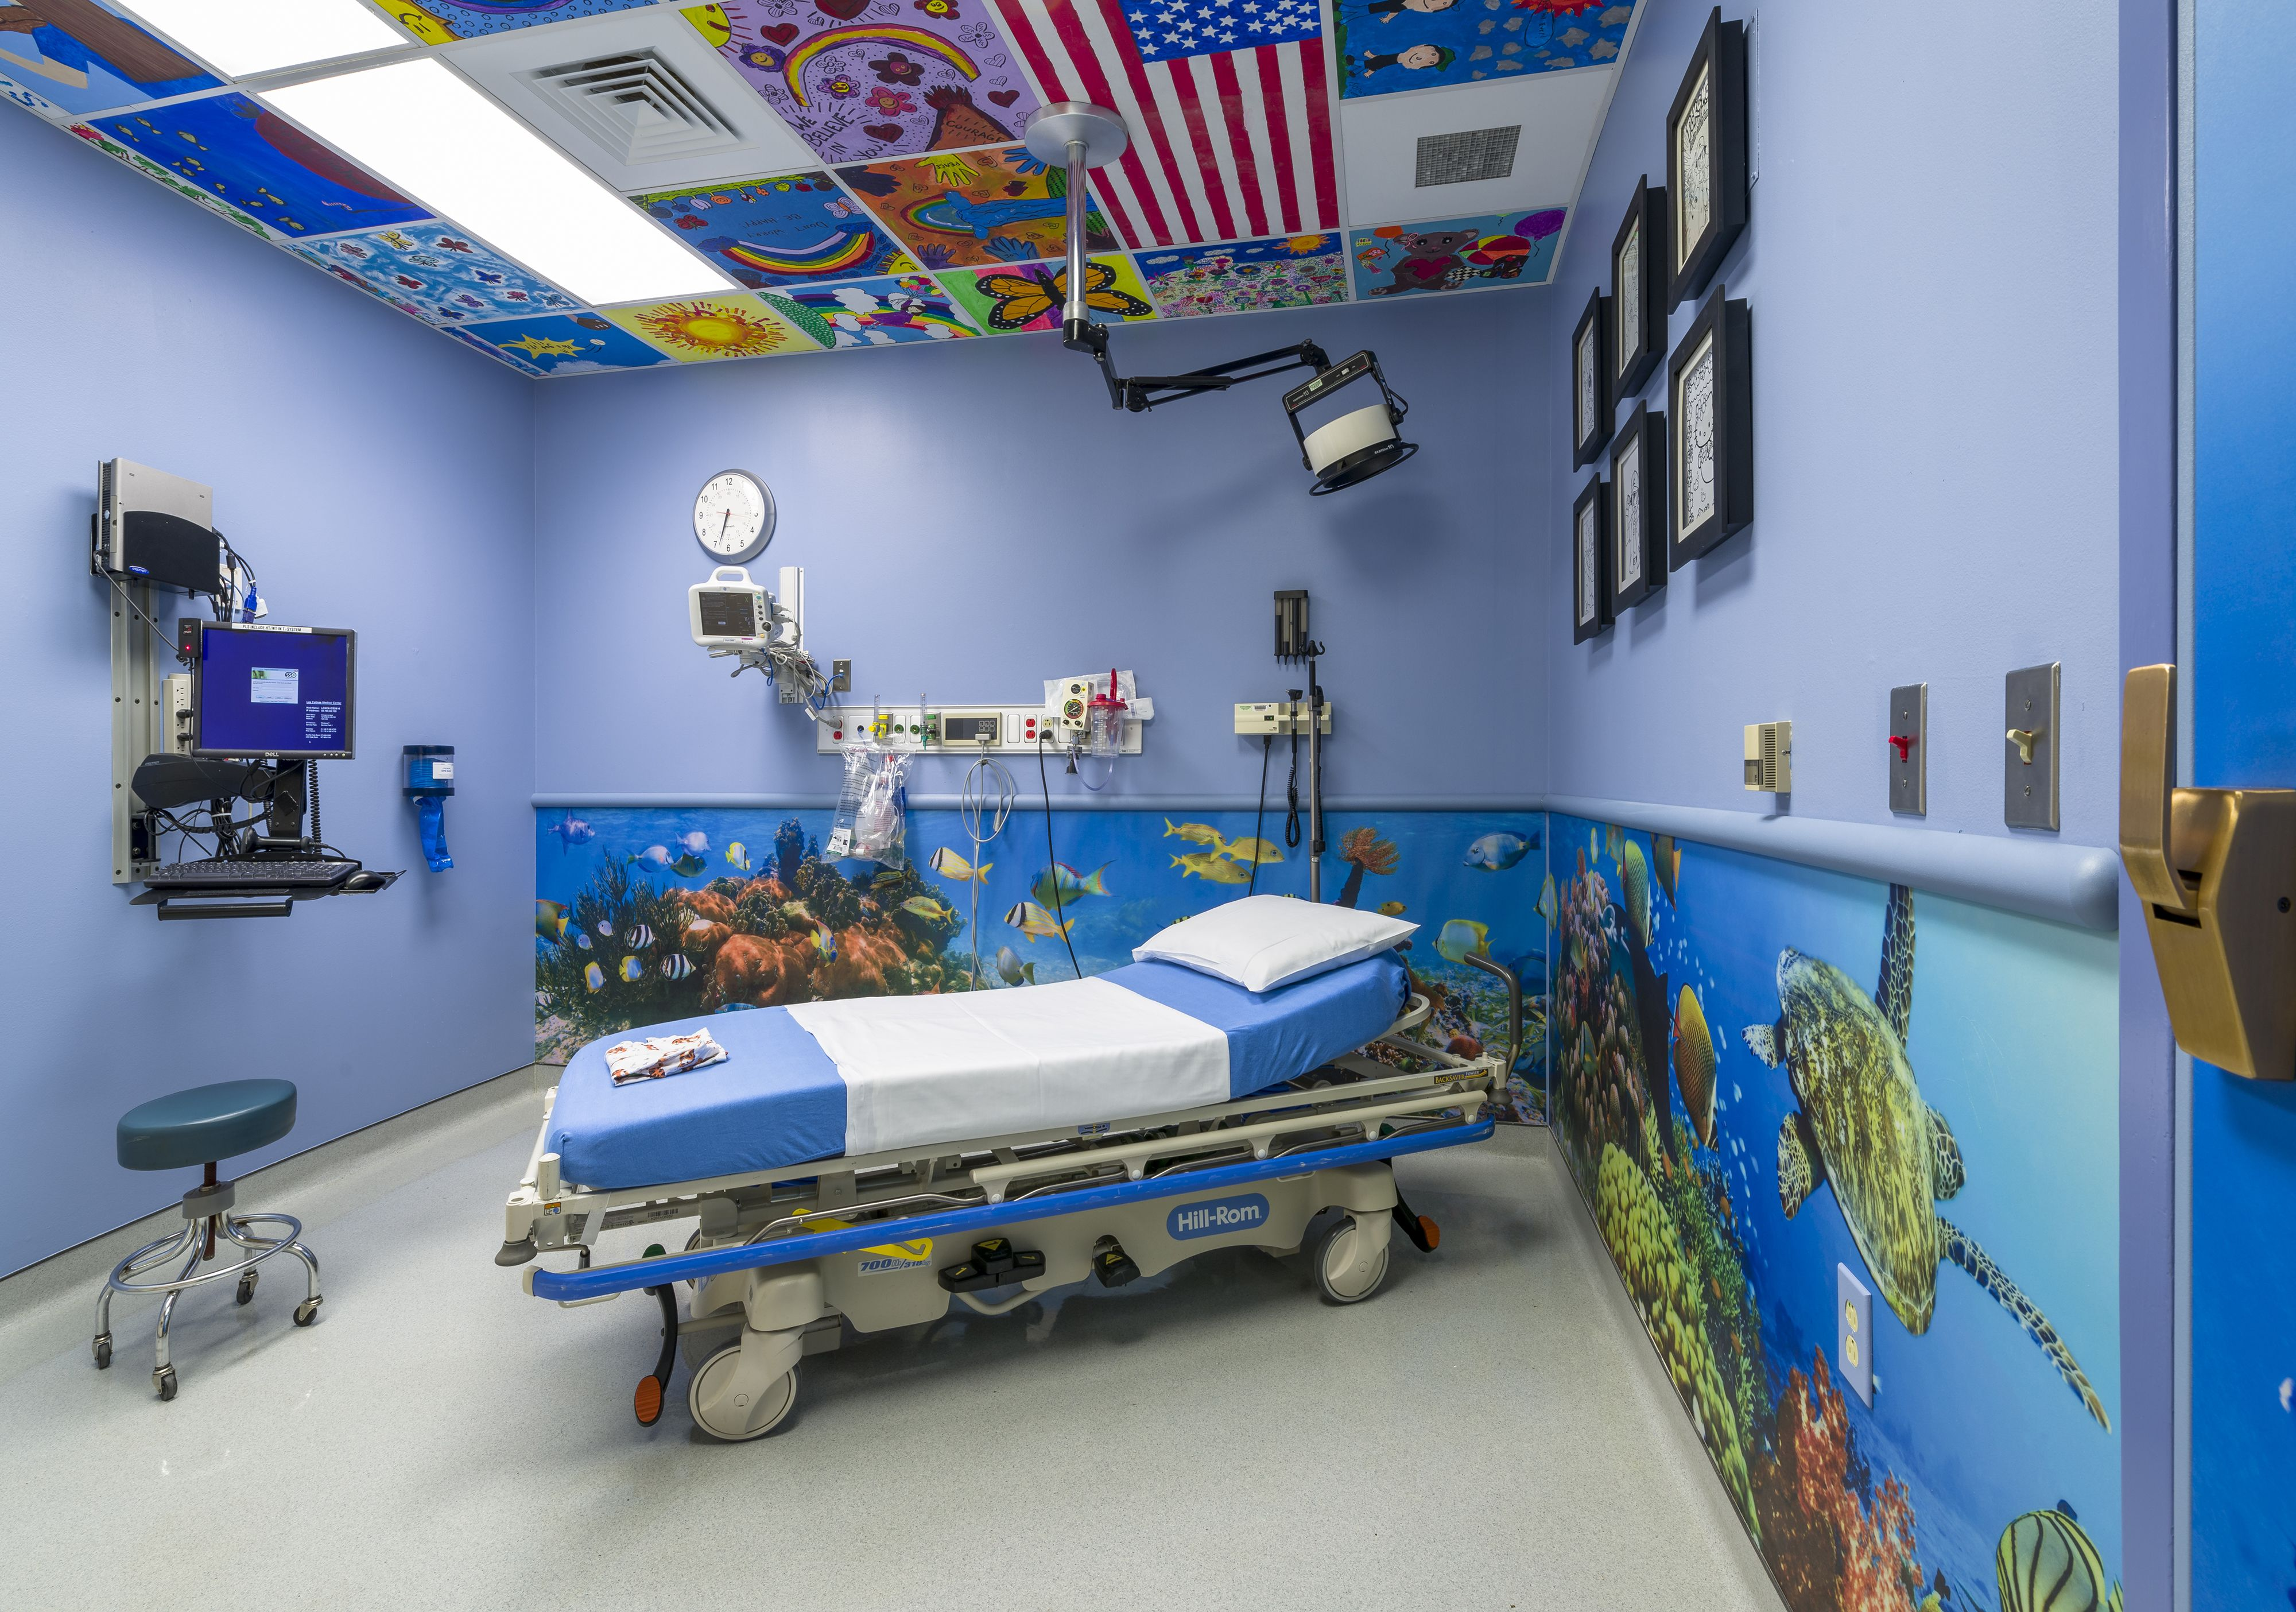 After: This Pediatric Emergency Room is bright and cheerful ...